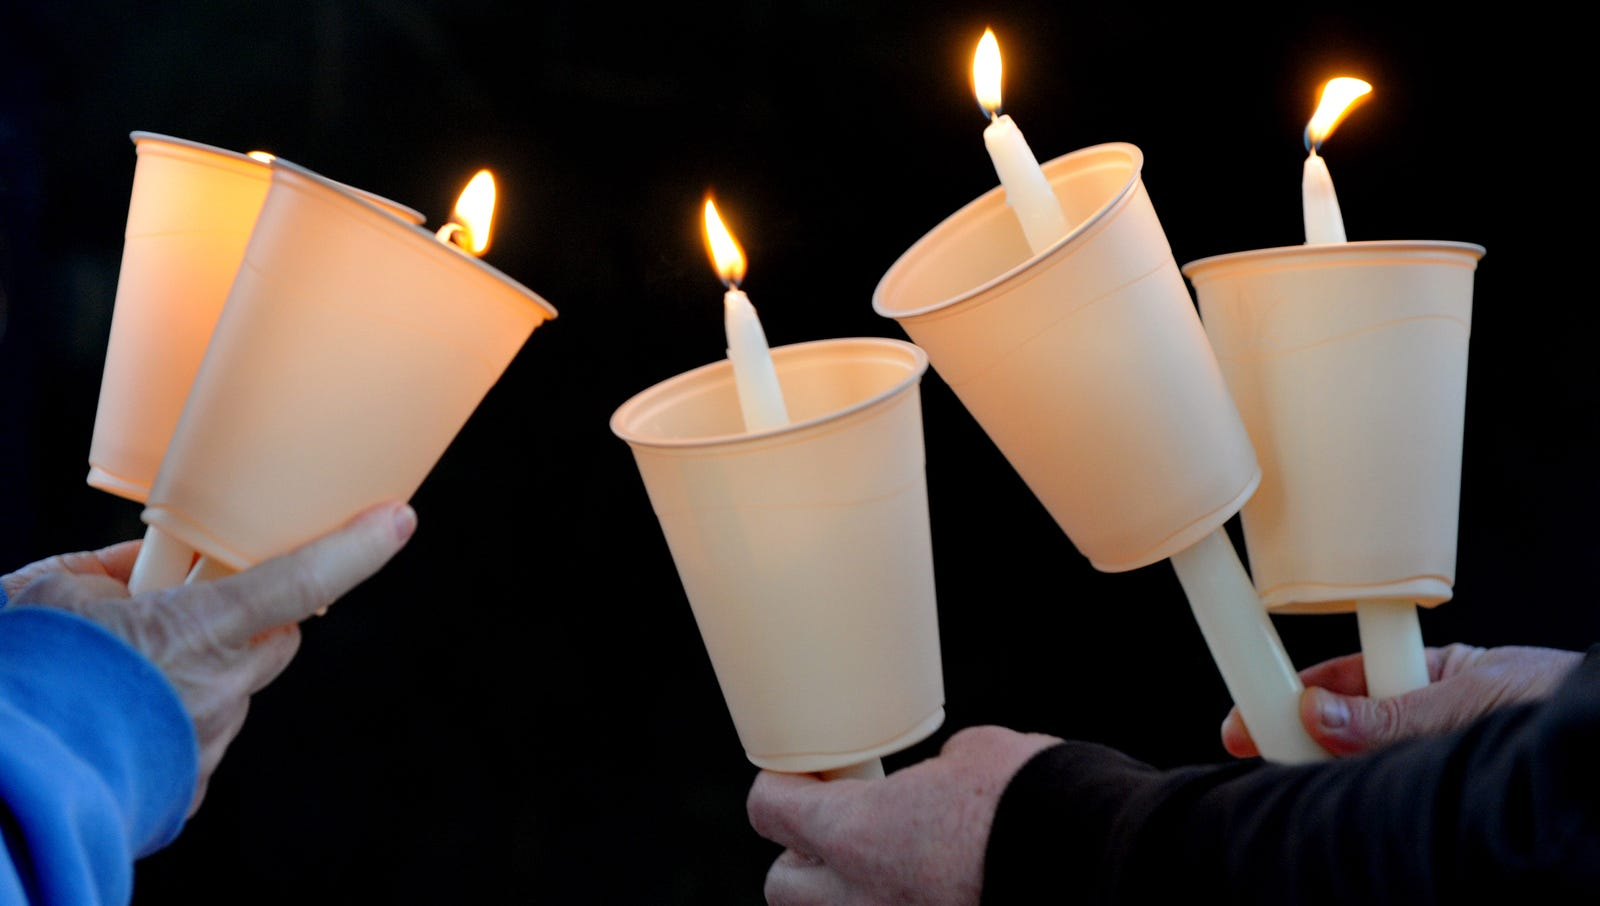 College Administrators Hold Candlelight Vigil To Honor Donor Lost In Mishandled Rape Case